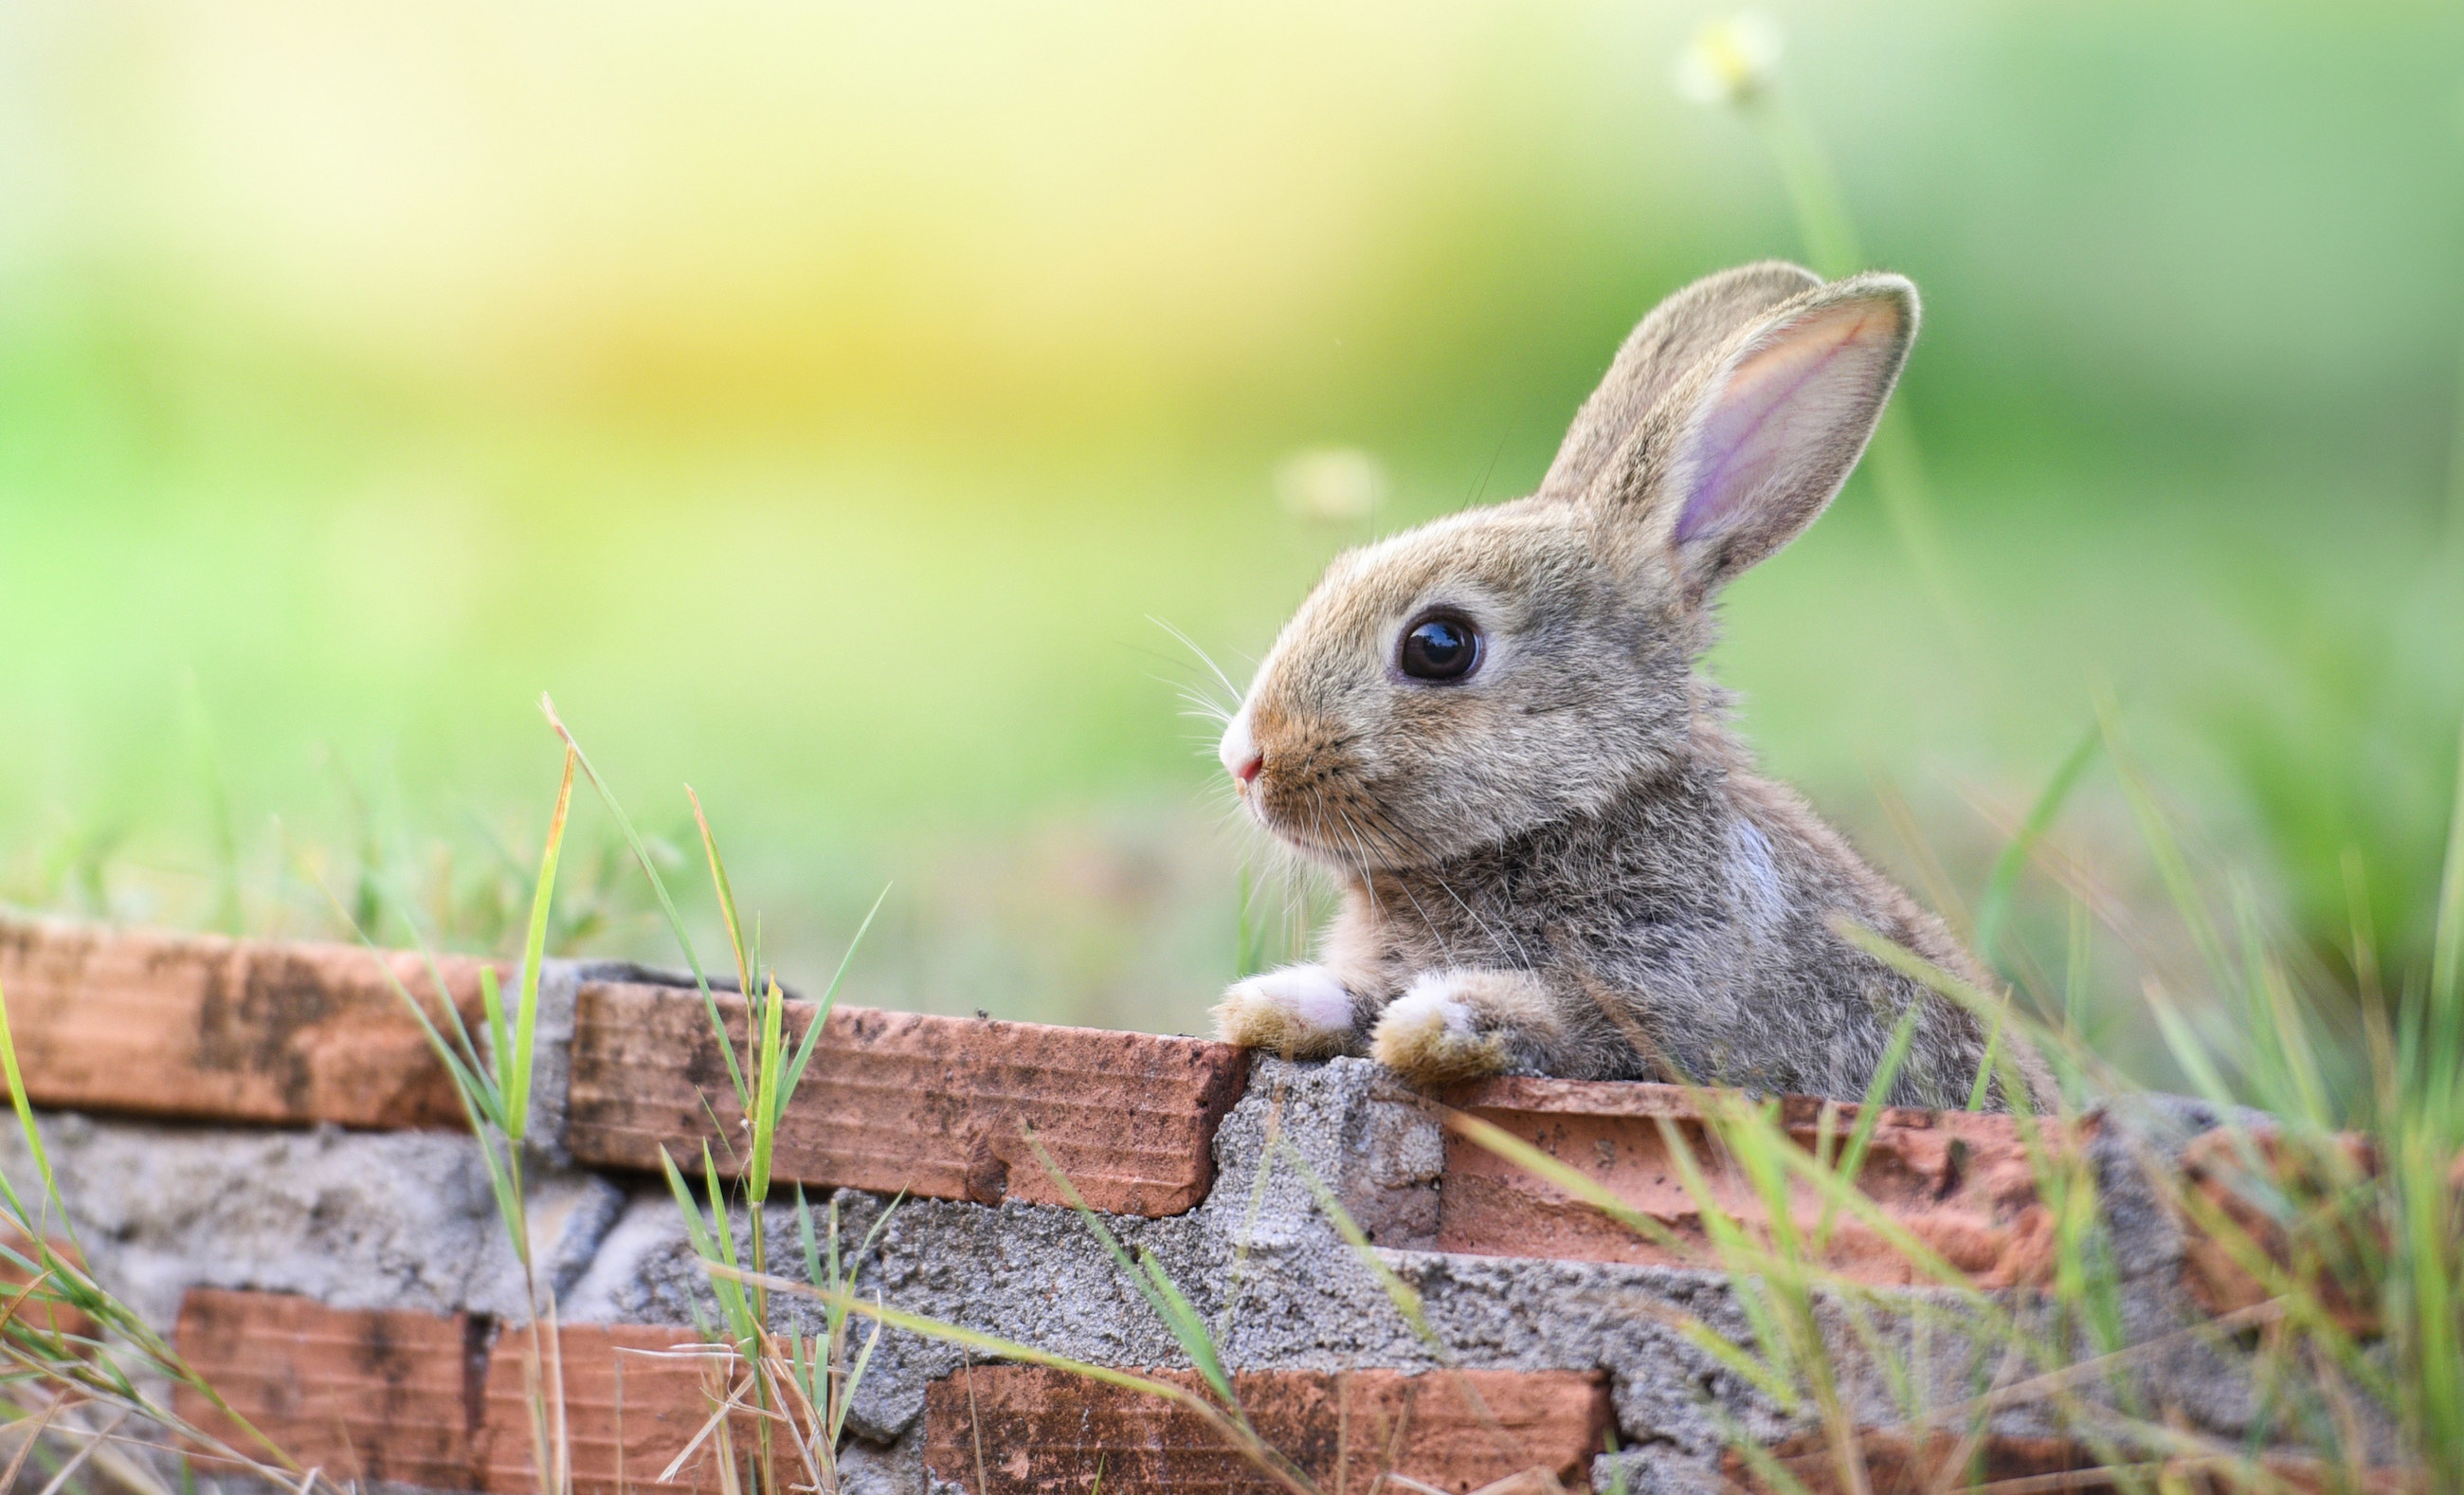 Cute rabbit sitting on brick wall and green field spring meadow